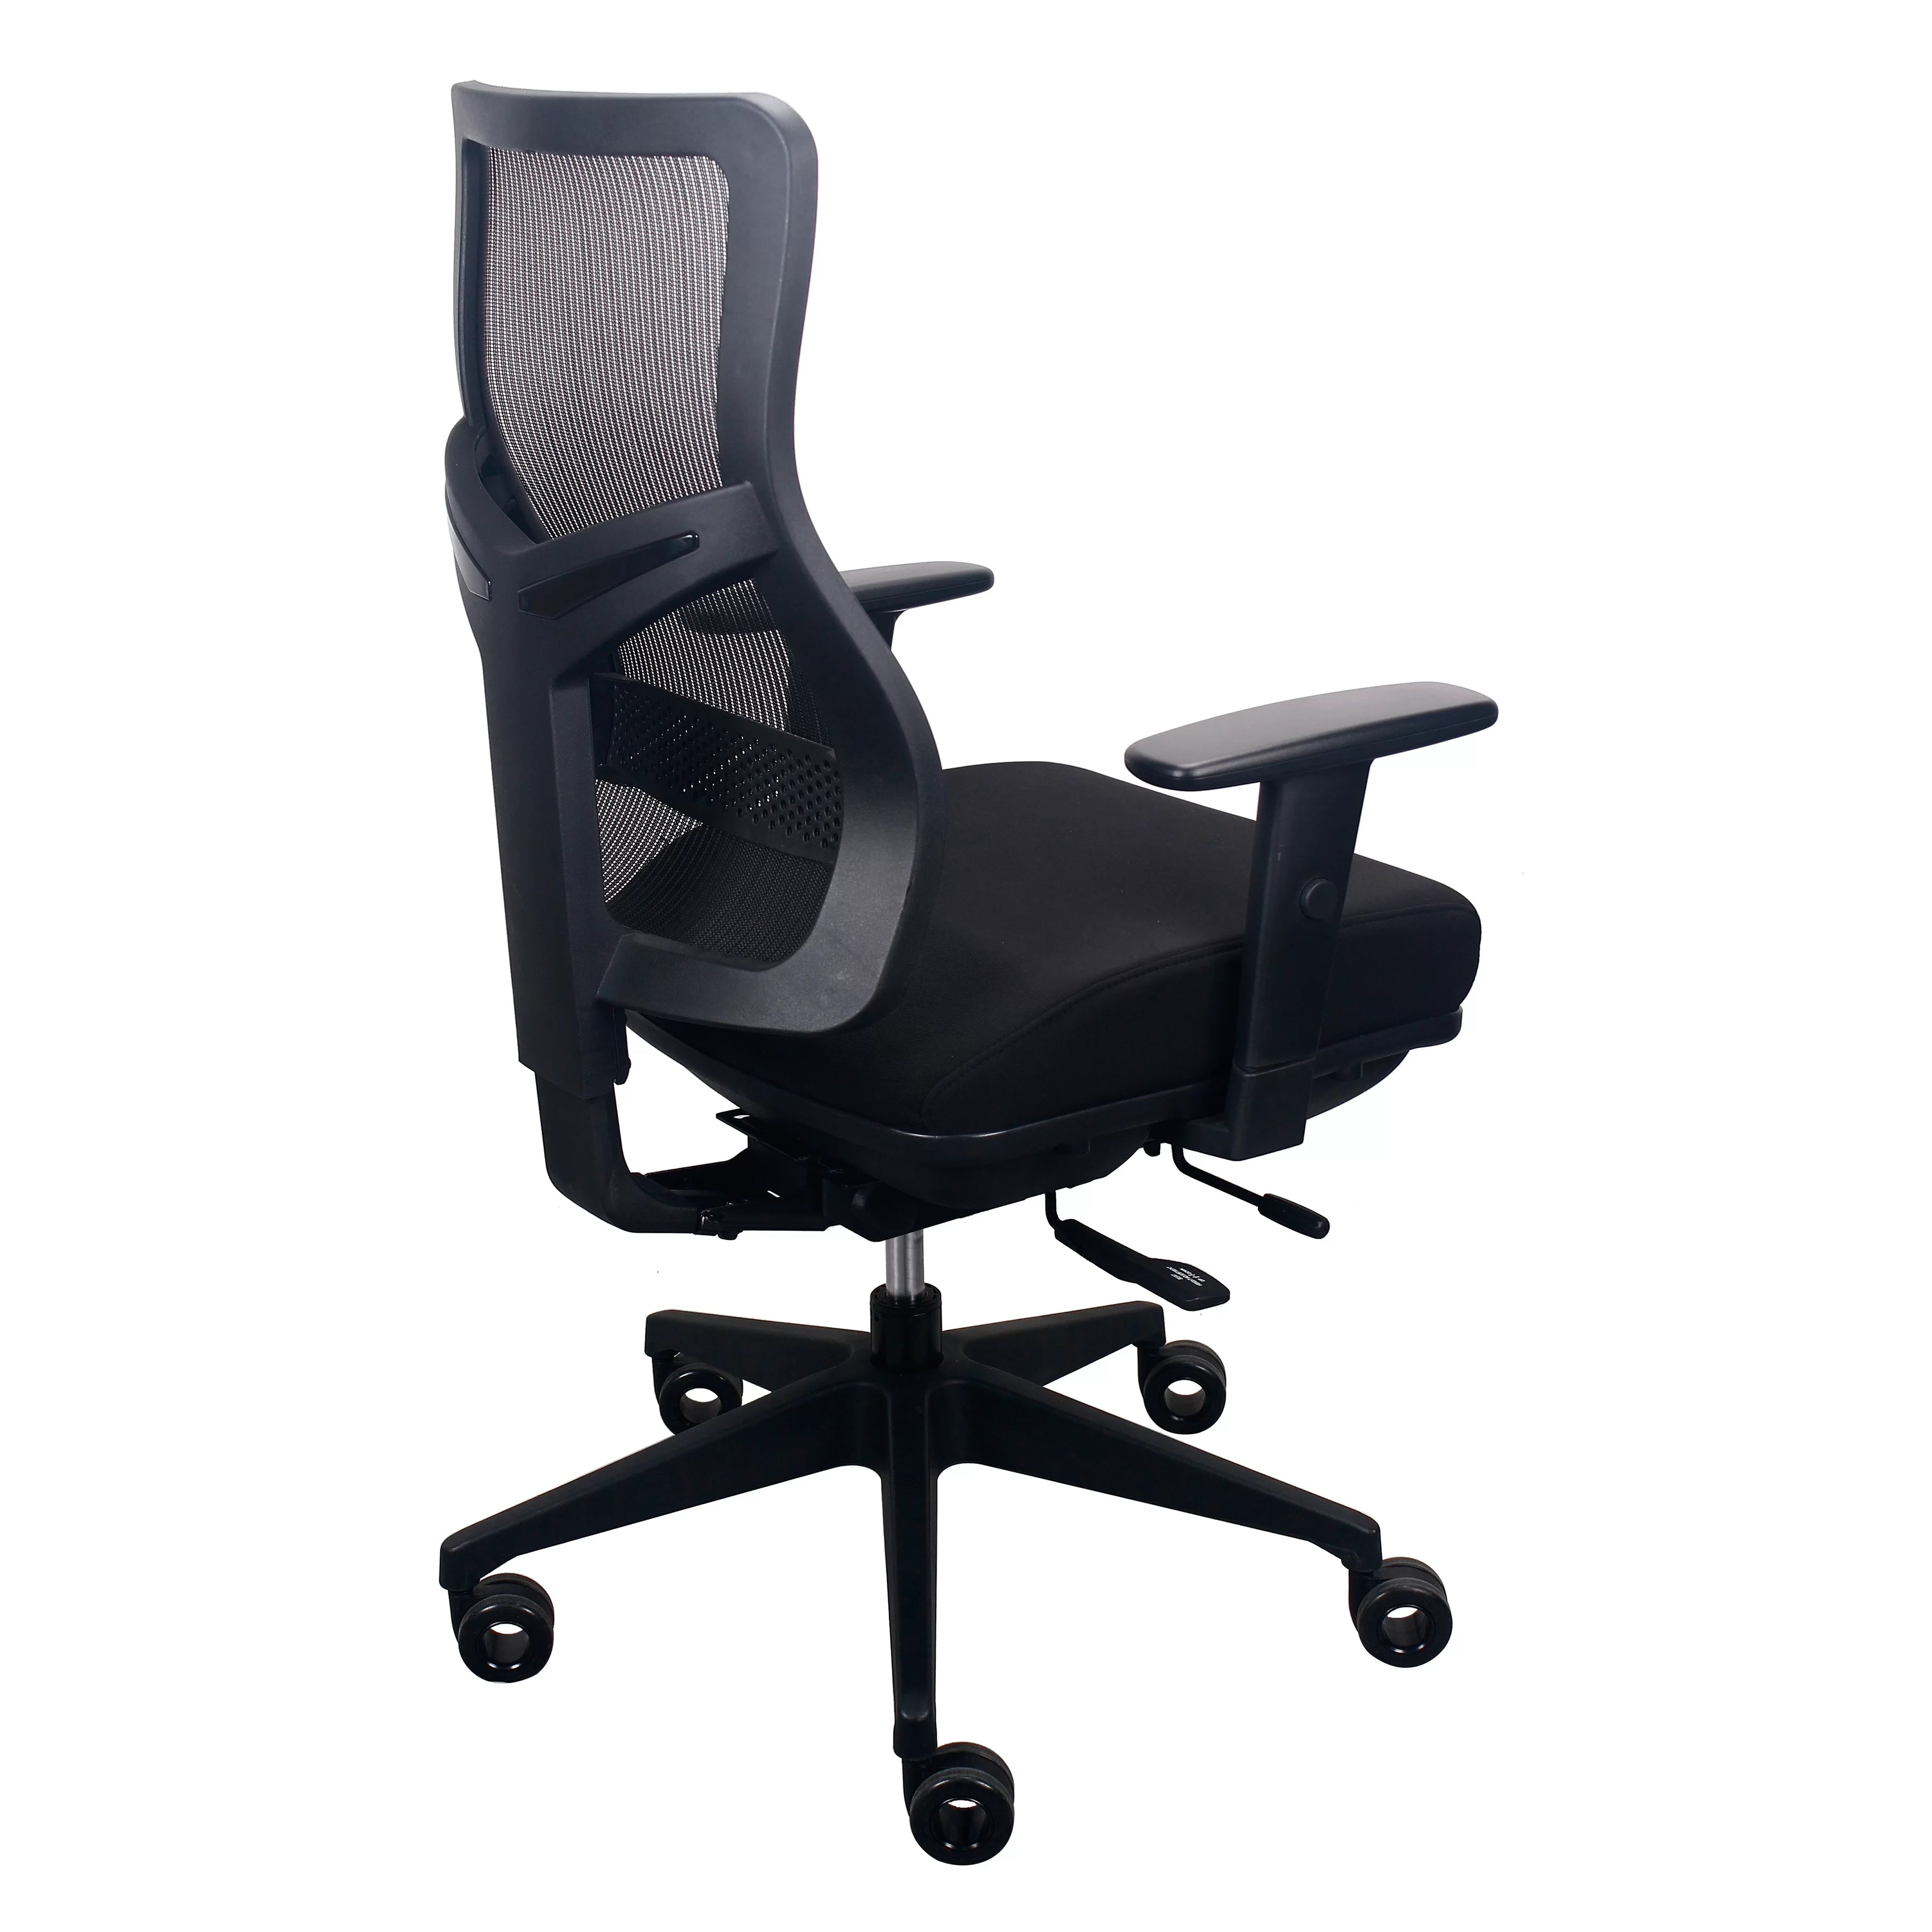 TempurPedic HighBack Mesh Executive Office Chair with